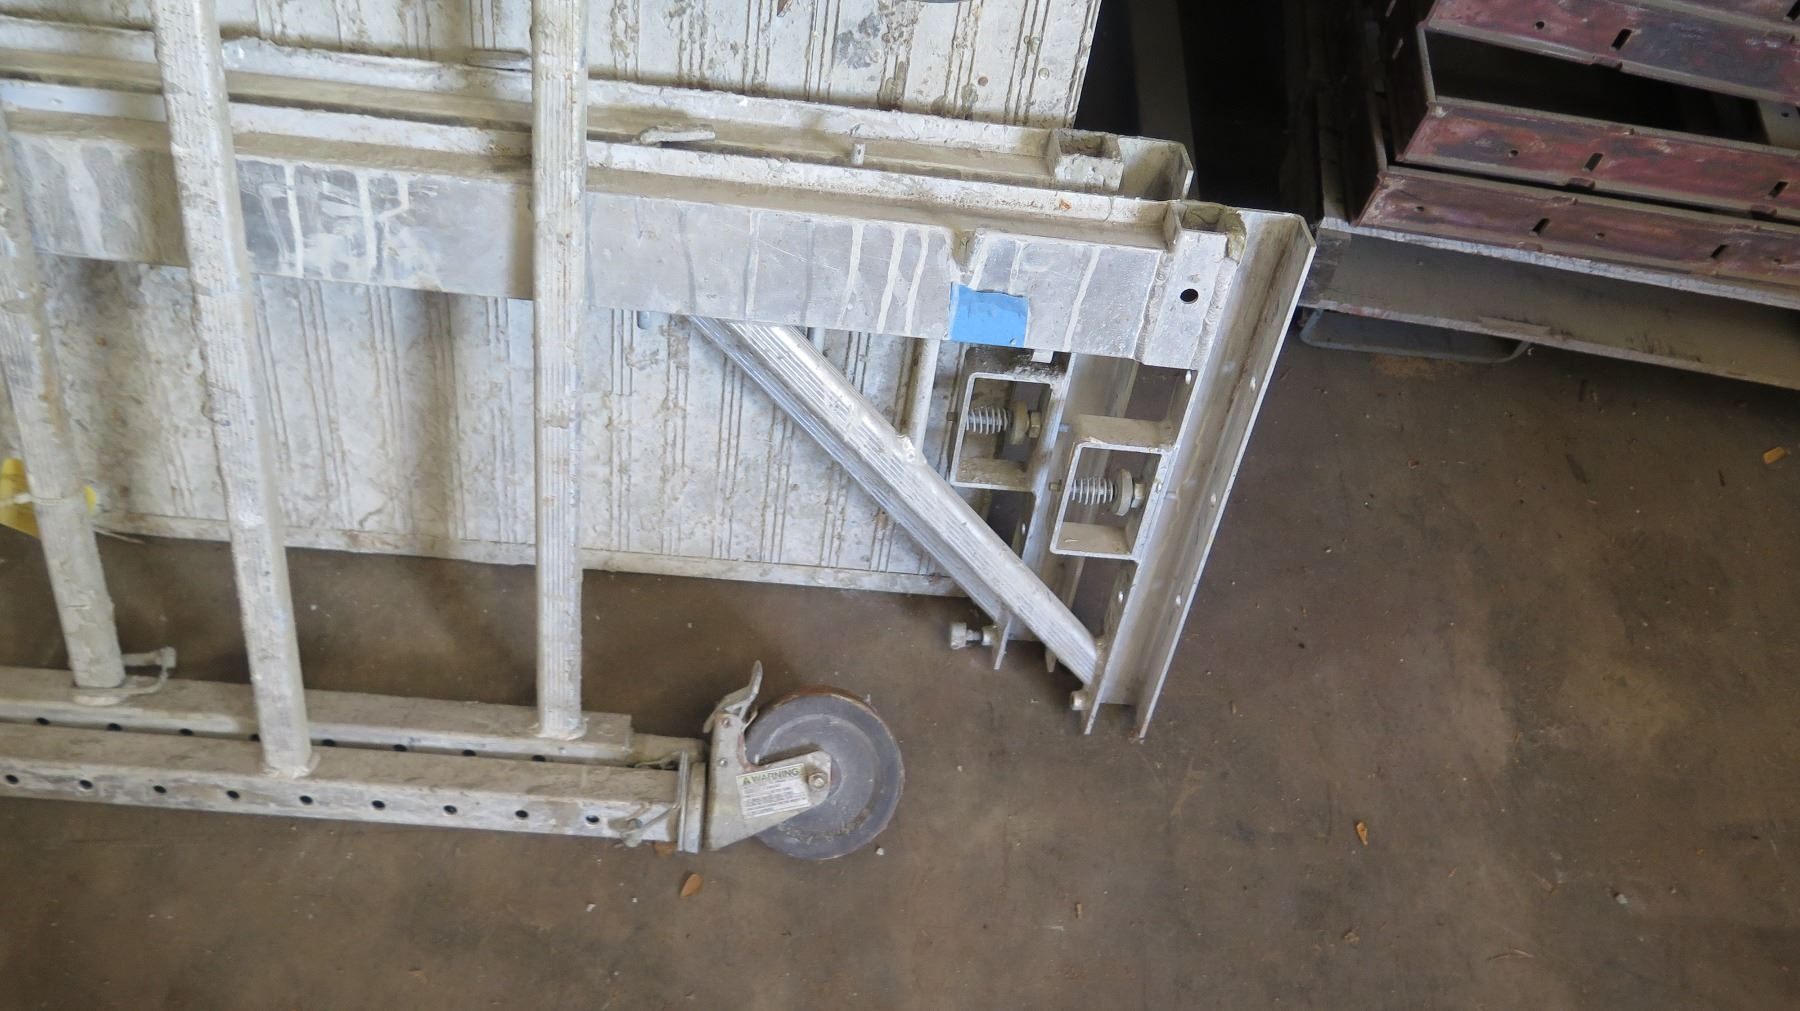 Portable Scaffolding With Wheels : Portable aluminum scaffolding on wheels oahu auctions